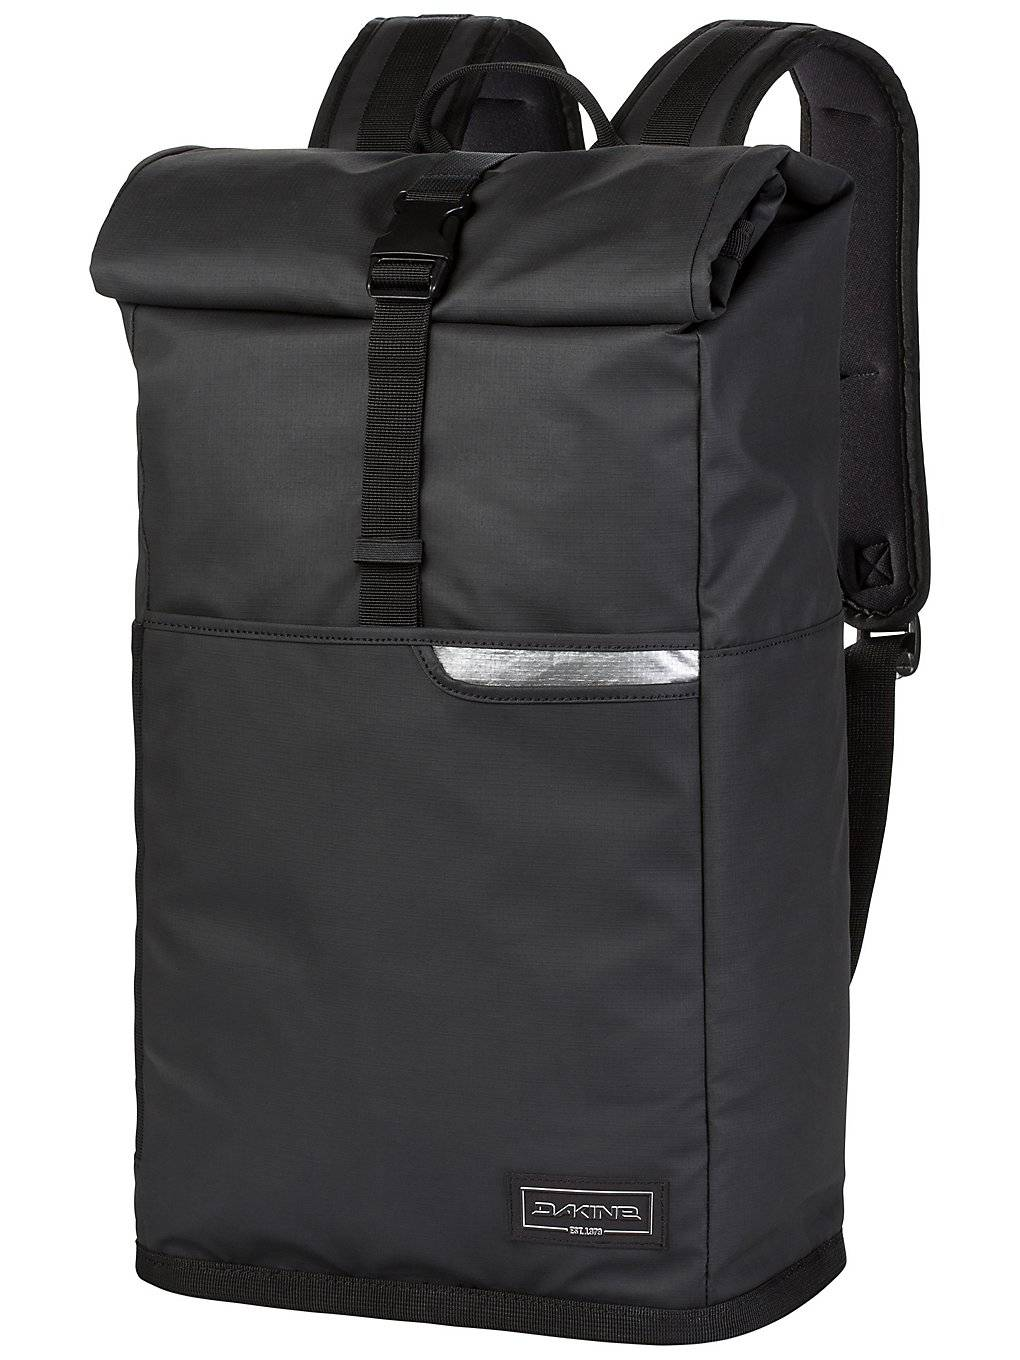 Dakine Section Roll Top Wet/Dry 28L Backpack musta  - squall